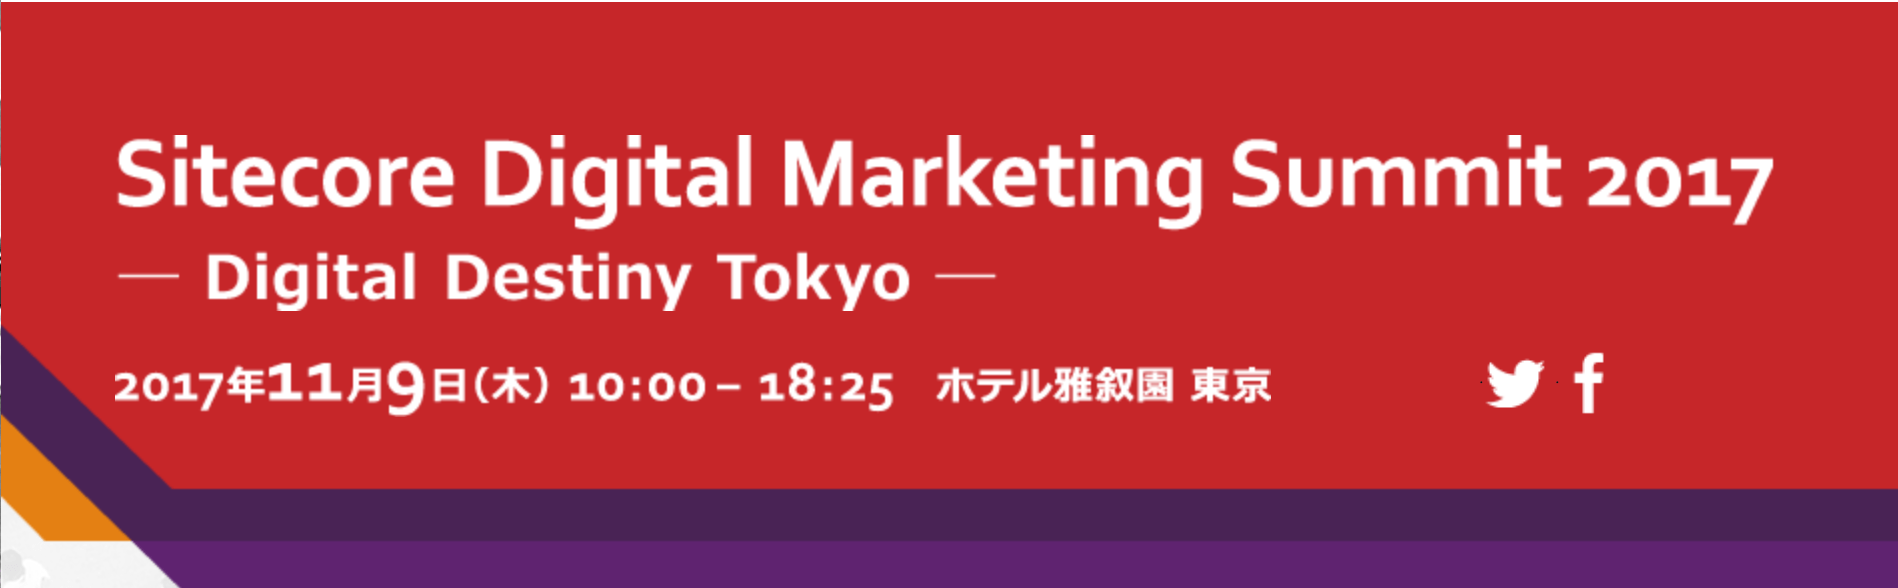 d8cec9aacdc7e4e5546f17d6d566e76a - [登壇情報]Sitecore Digital Marketing Summit 2017